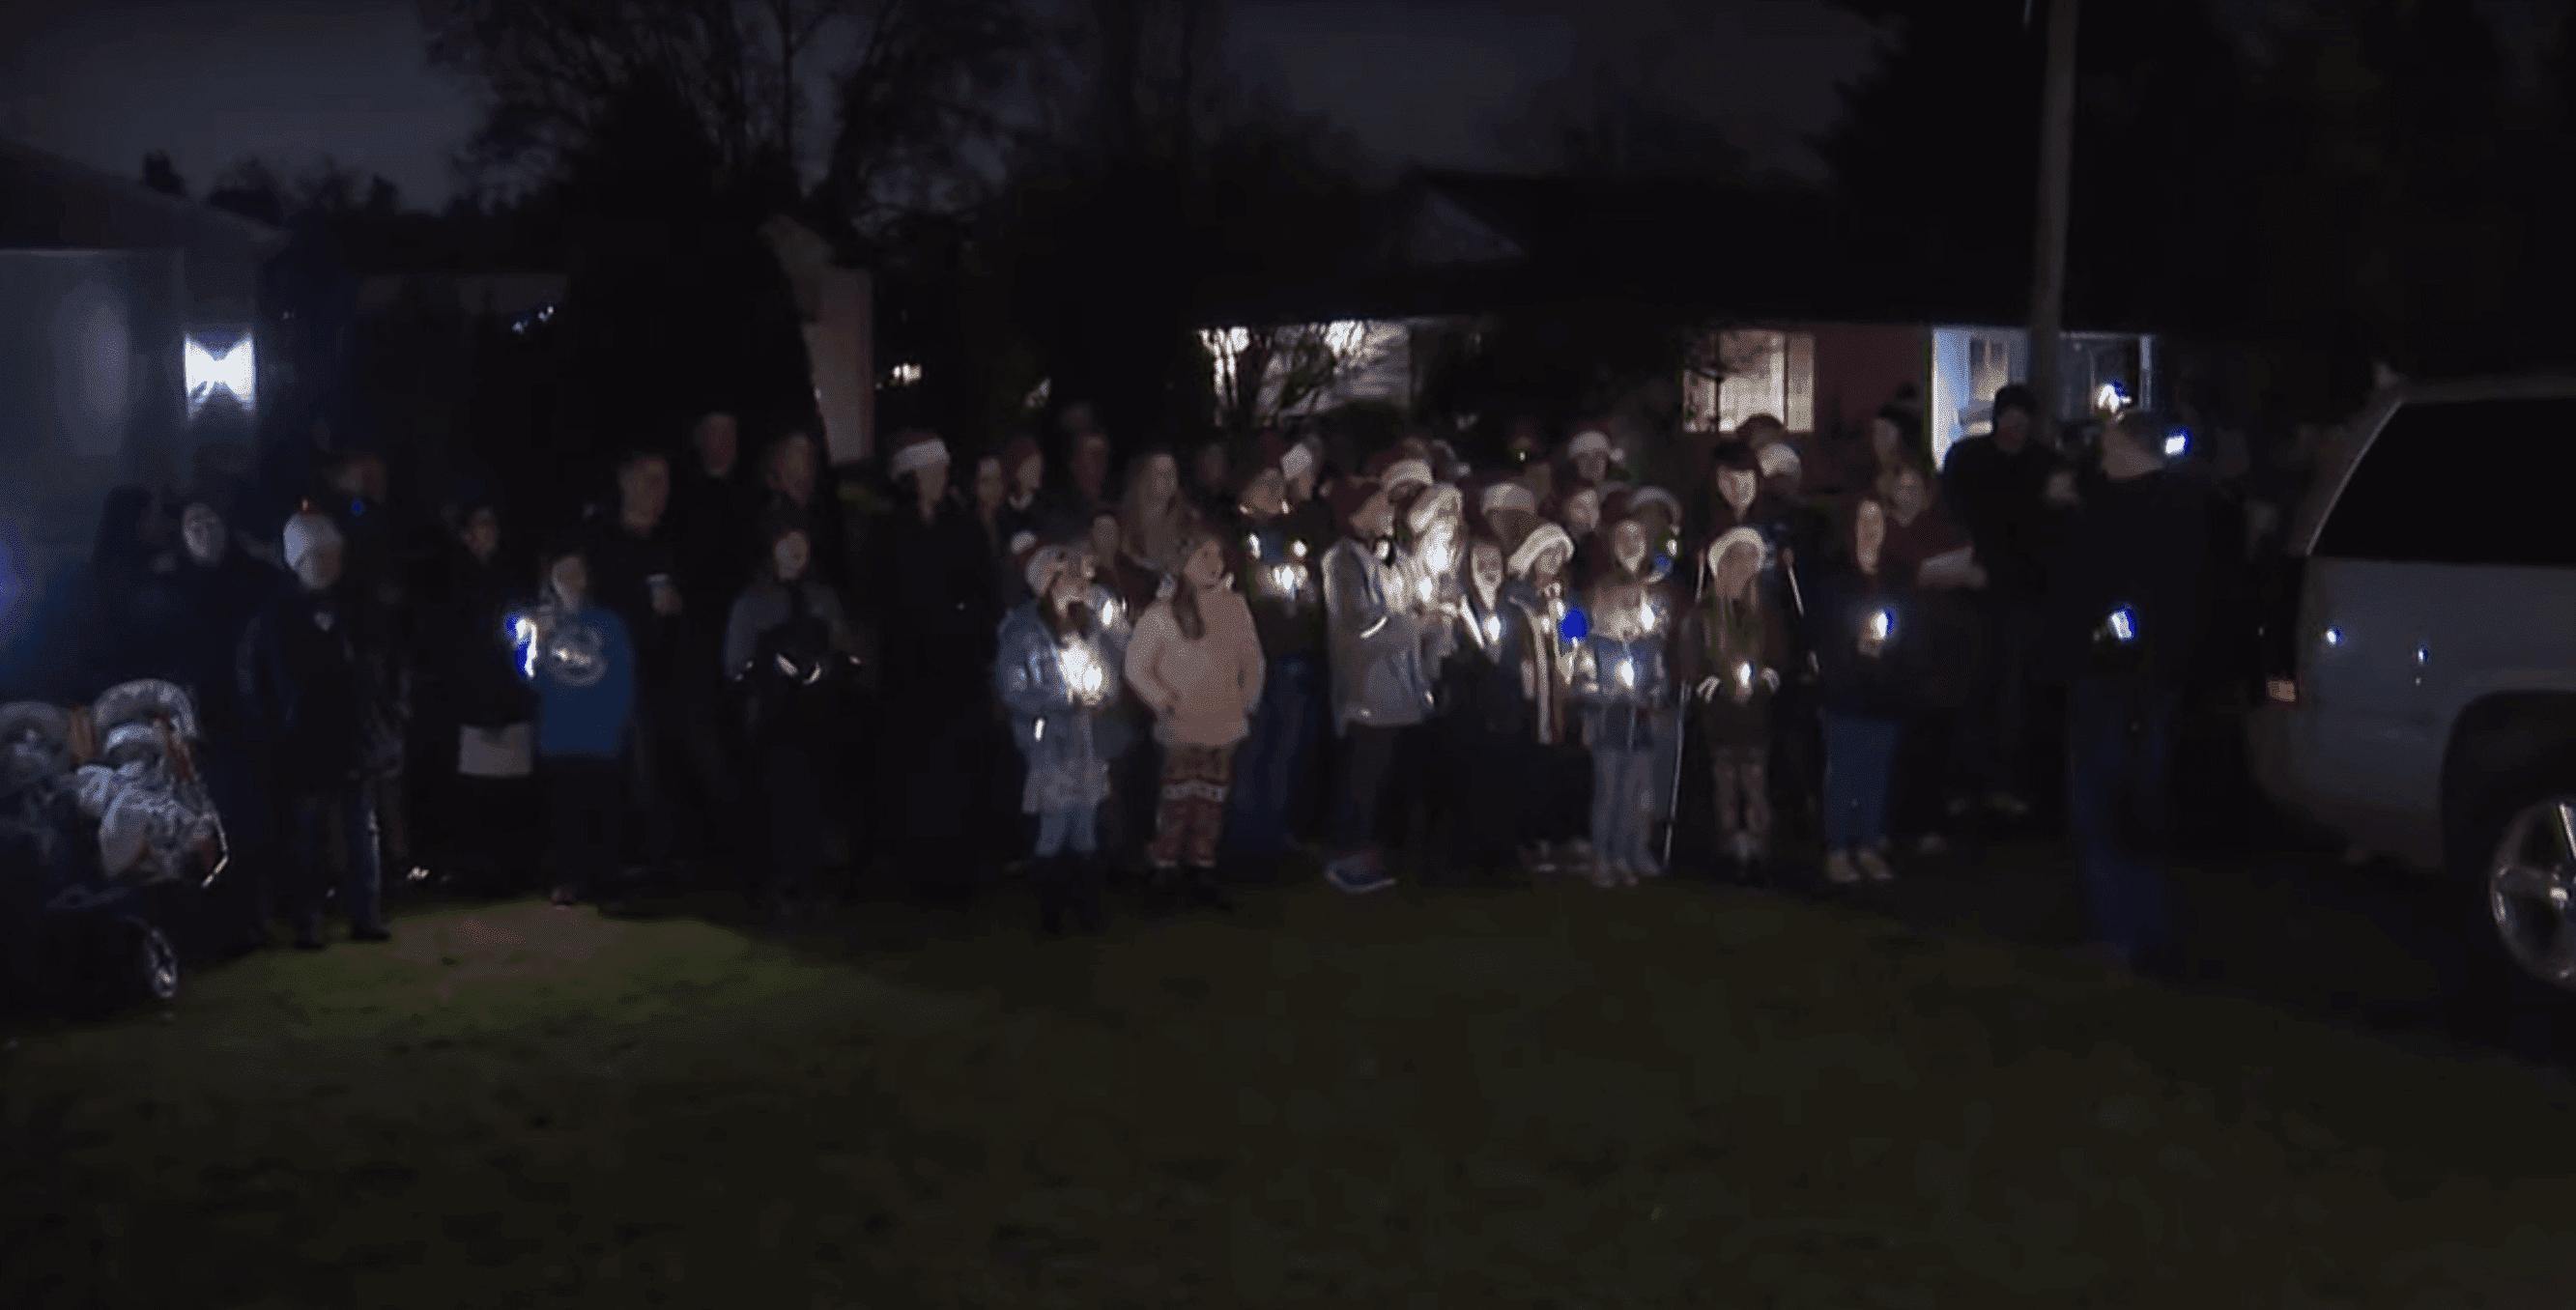 Students from York Elementary school caroling in Laurie Burpee's front yard in Vancouver, Washington | Source: YouTube/KGWNews